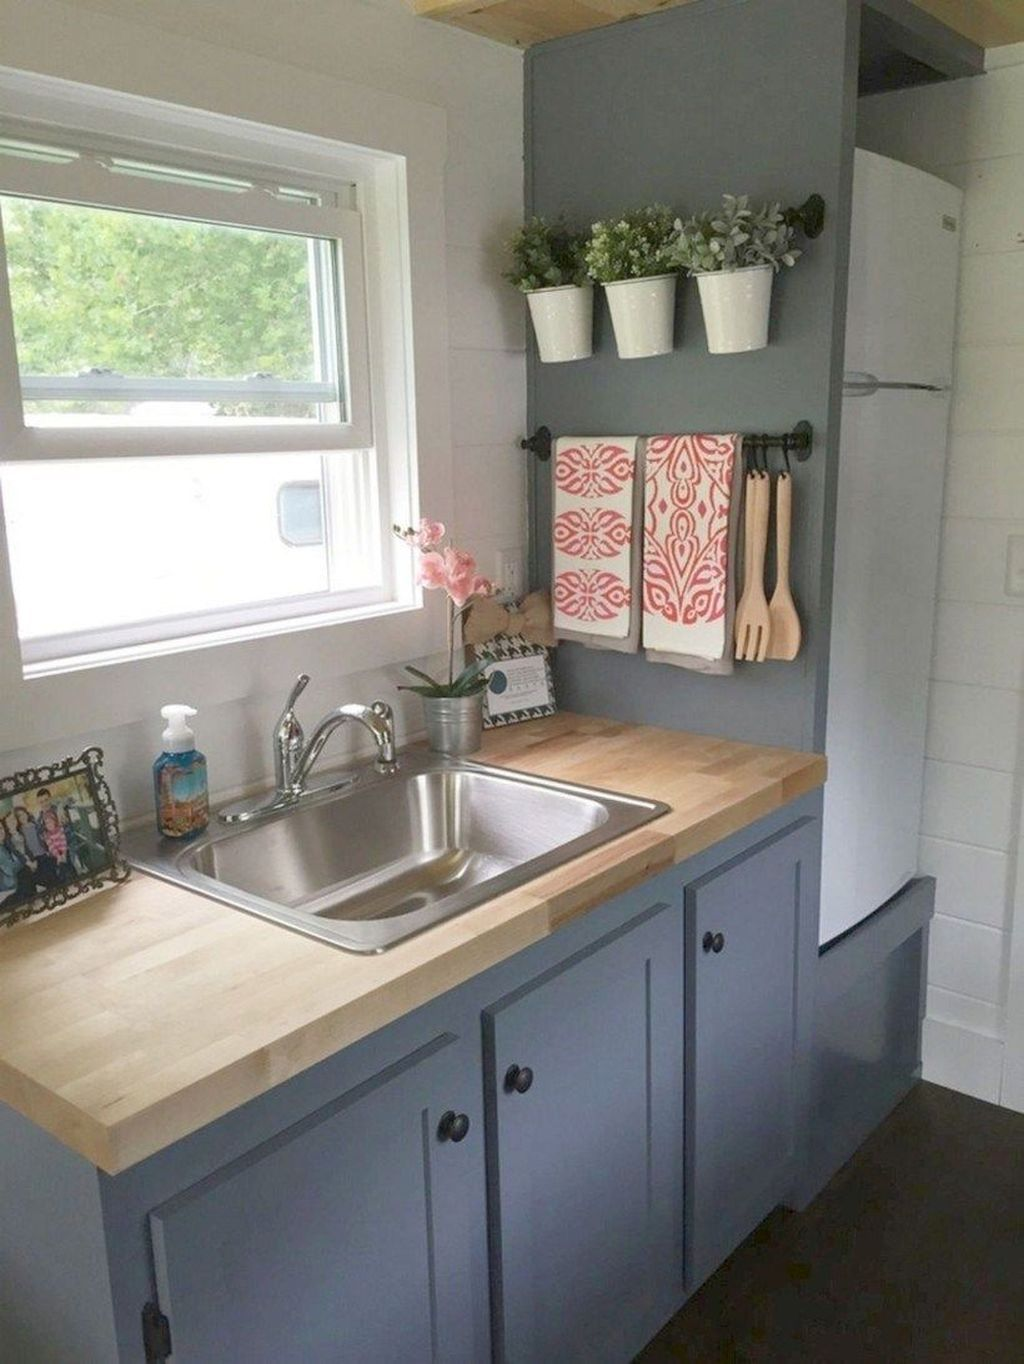 35 Amazing Small Apartment Kitchen Ideas images